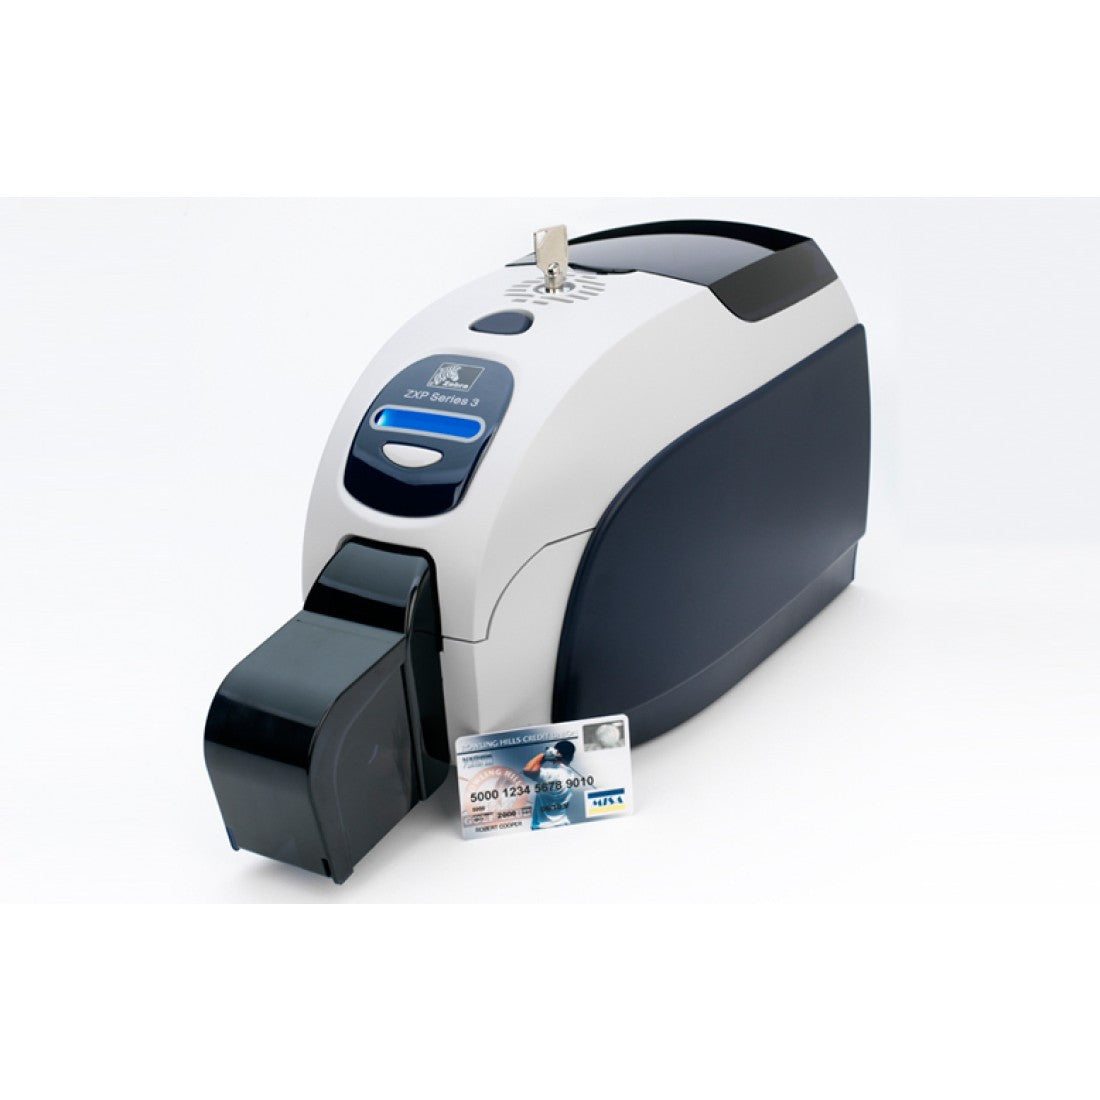 Zebra ZXP Series 3, dubbelzijdig, USB & Ethernet, Magnetic Stripe Writer